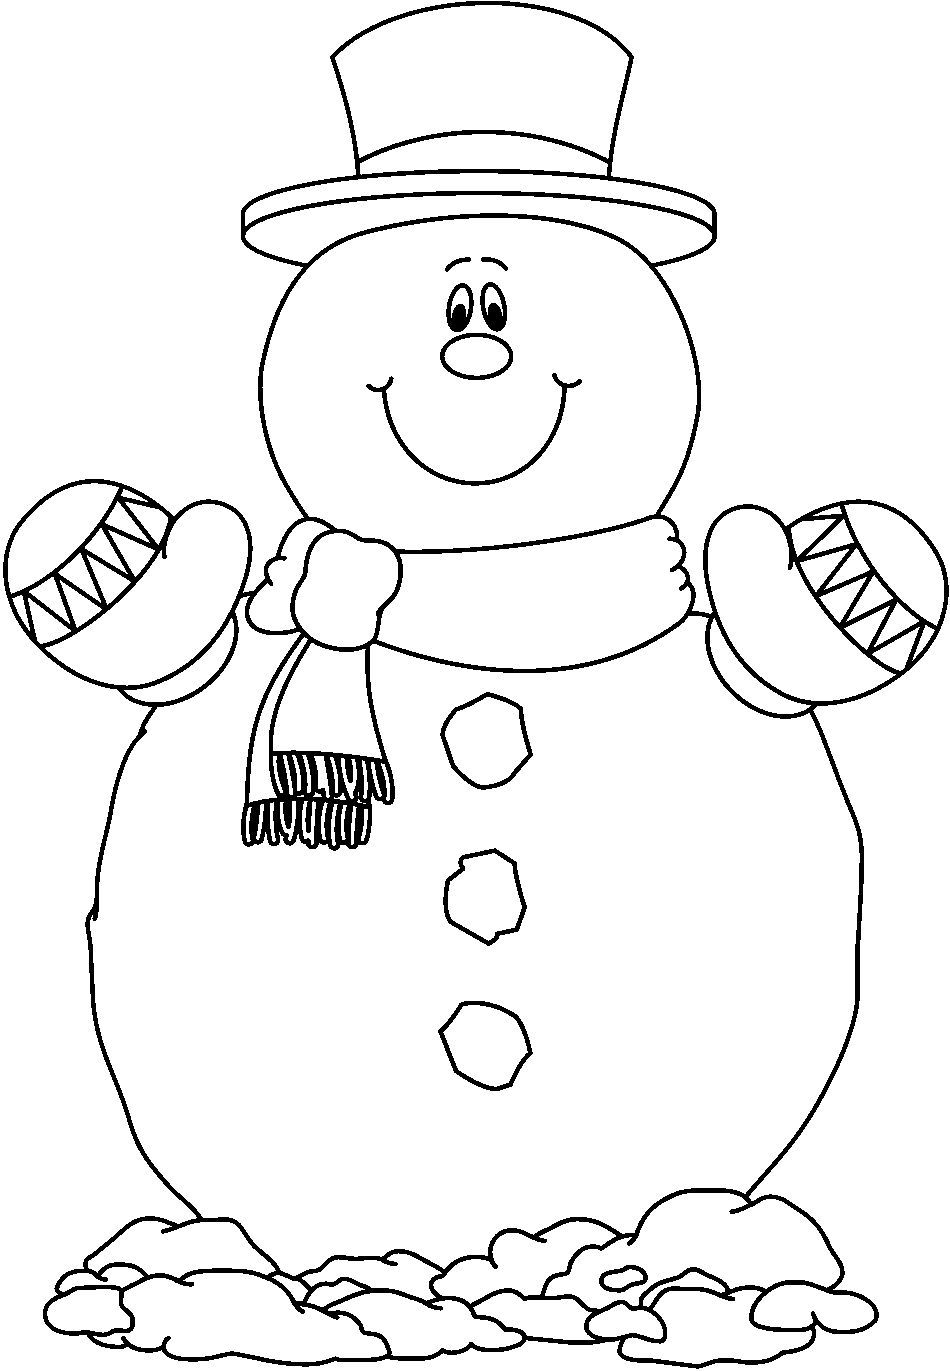 Snowman coloring printable pages - Smilling Snowman Coloring Pages Free